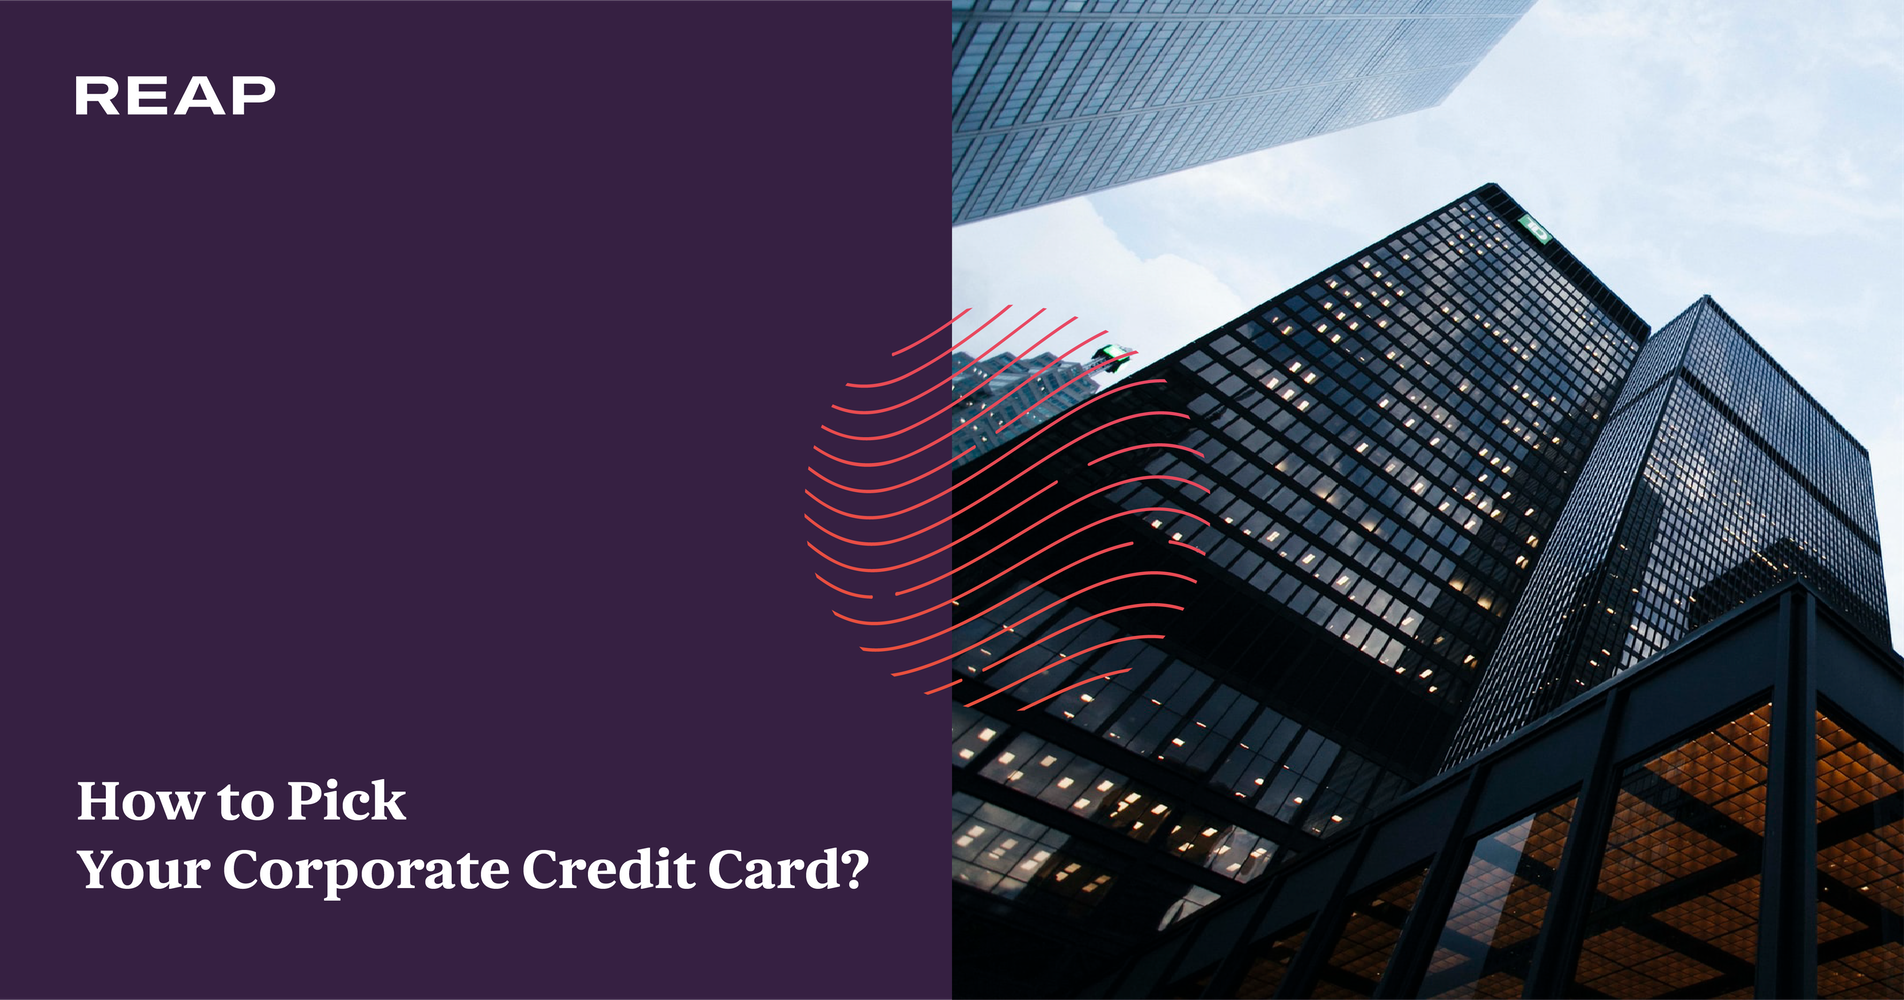 Cover Image for How to Pick Your Corporate Credit Card? Ultimate Guide to Picking a Corporate Credit Card for Your Business